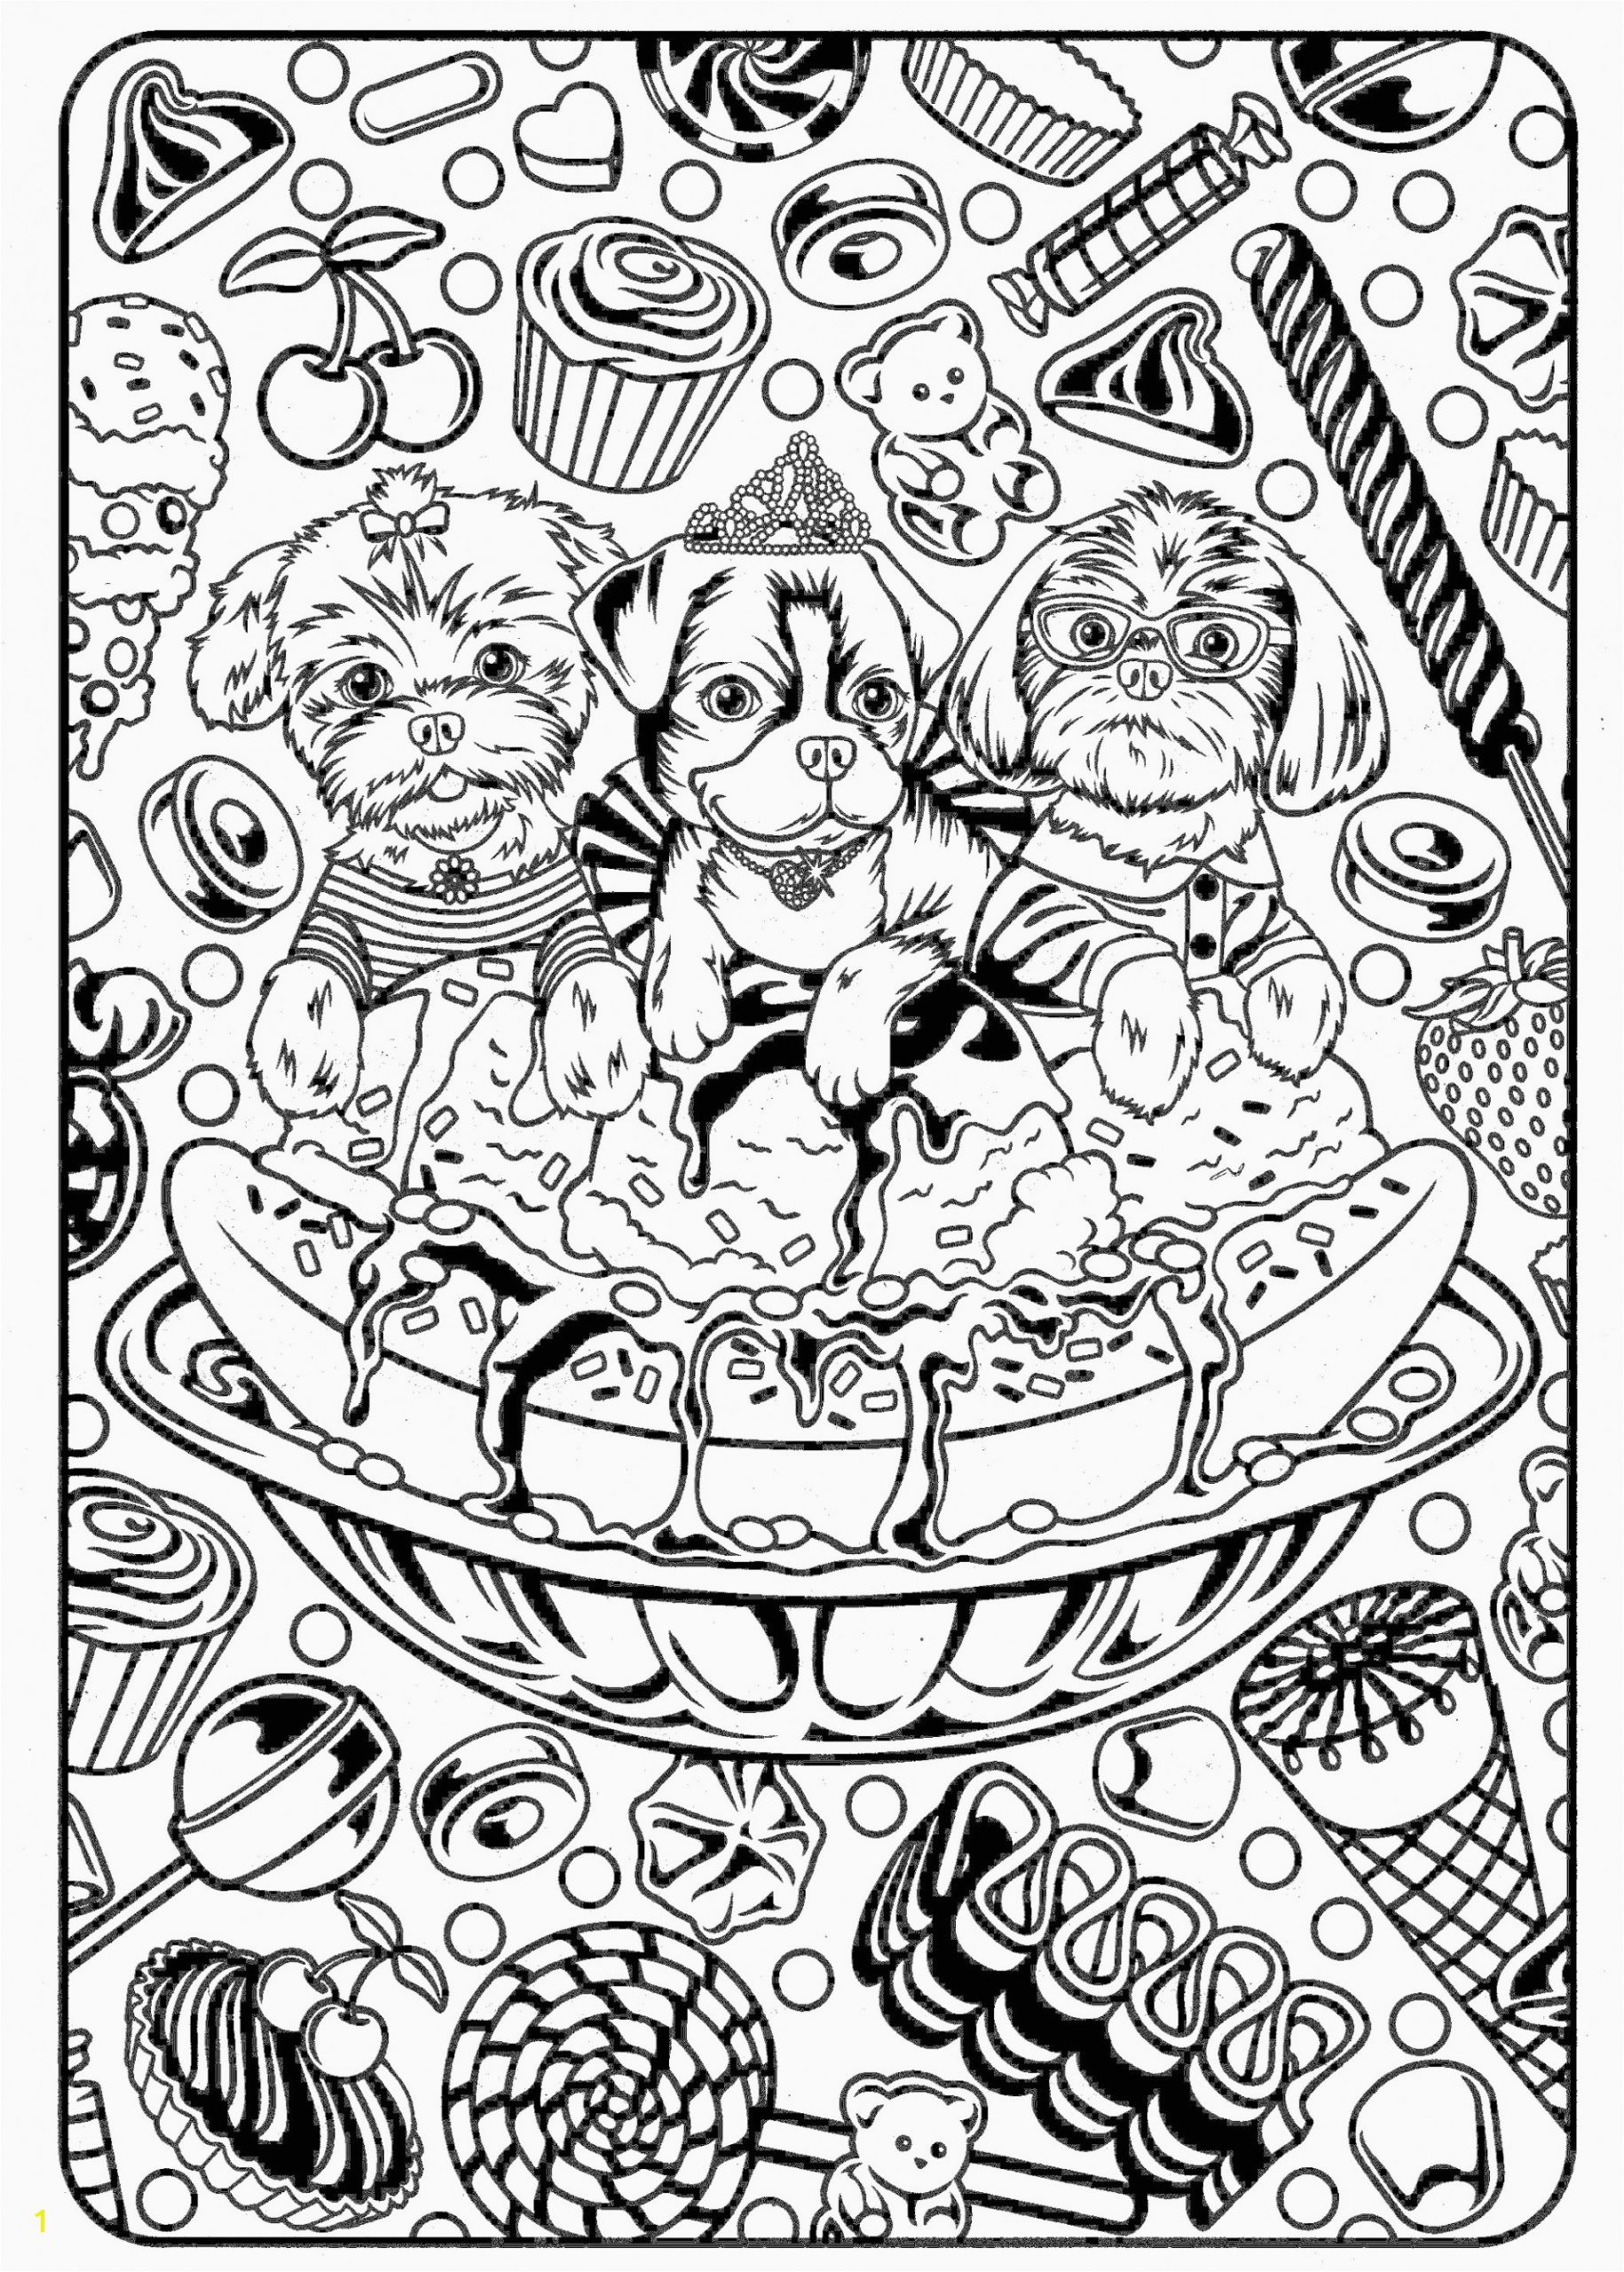 disney halloween coloring sheets disney halloween coloring sheets printable home coloring pages best color sheet 0d modokom fun